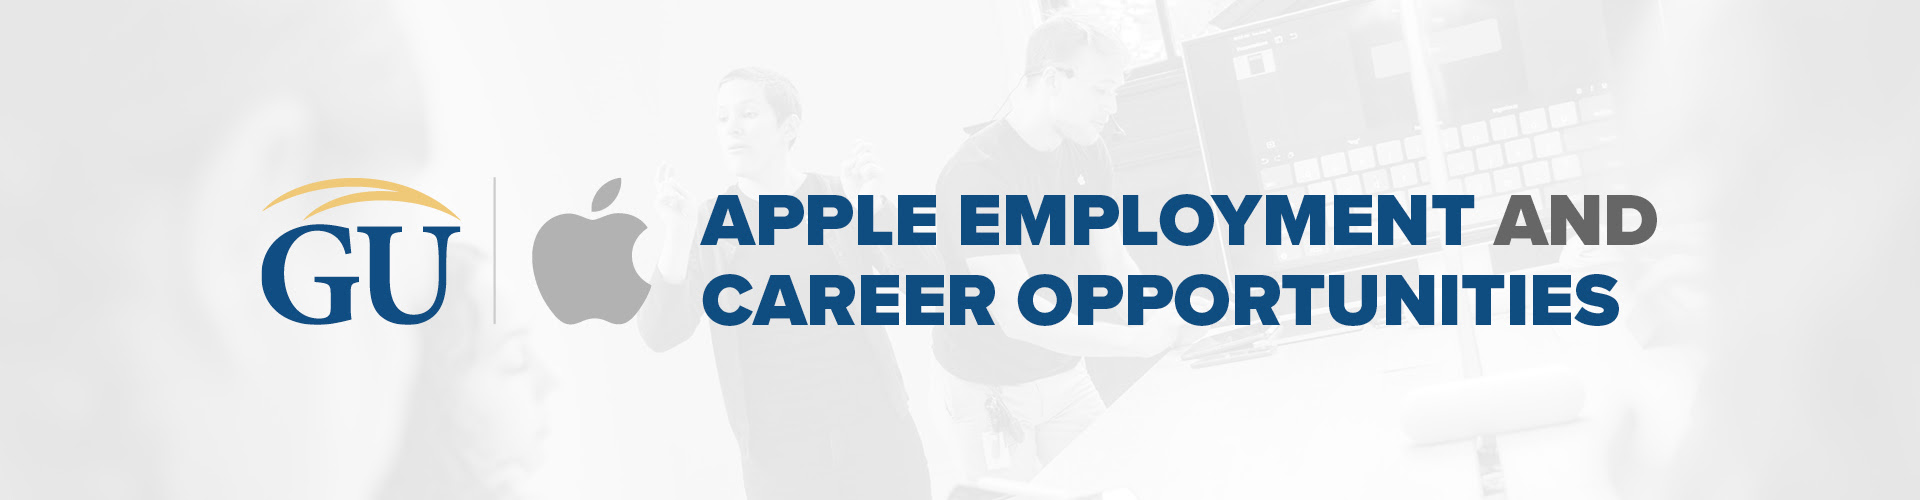 "An image with Gallaudet's and Apple's logo is visible with the phrase ""Apple Employment and Career Opportunities"""